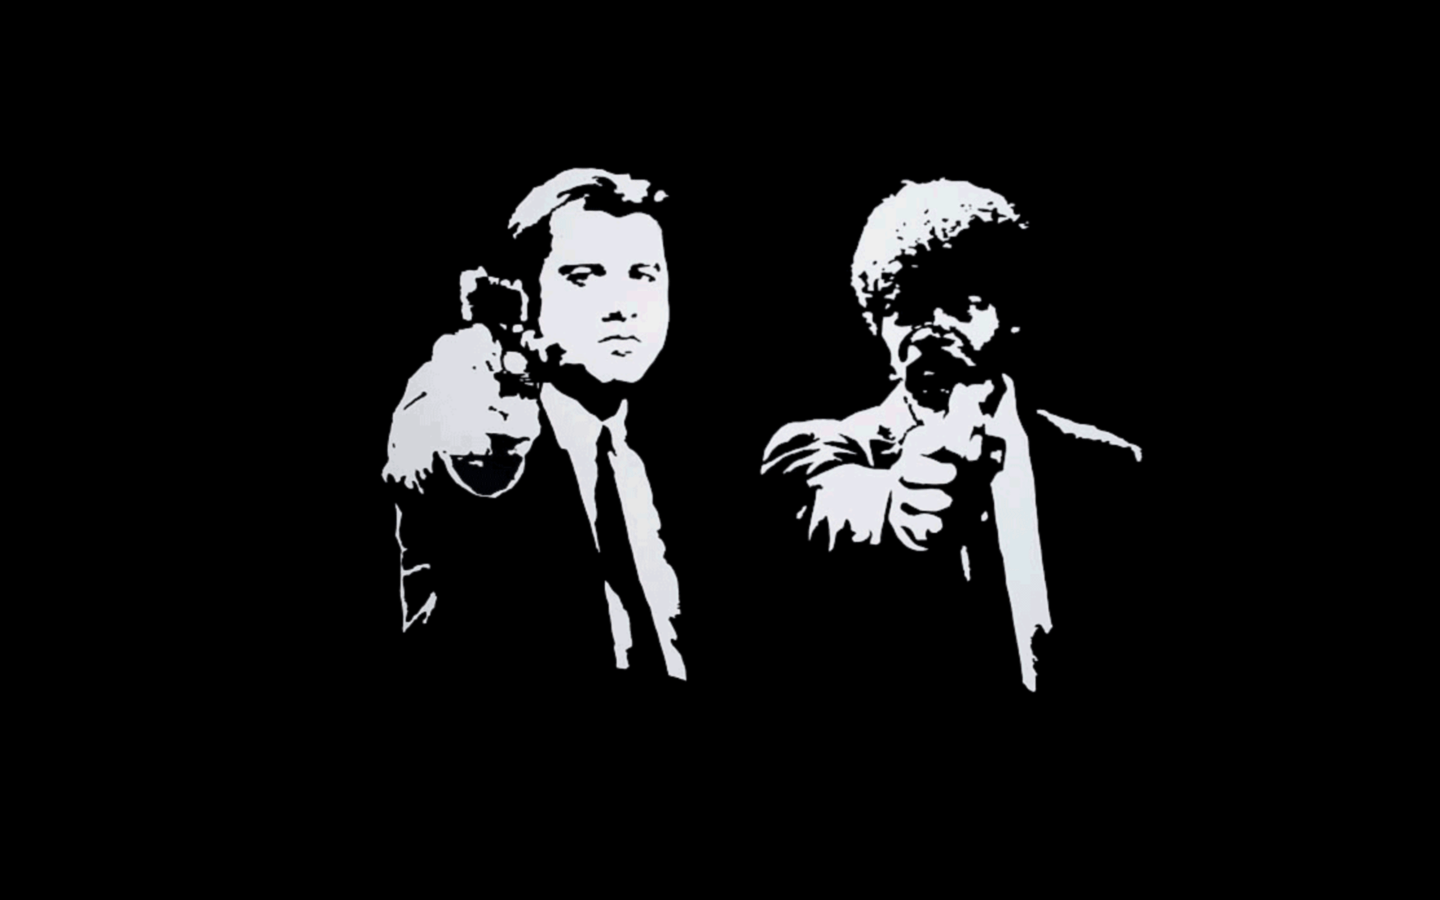 Pulp Fiction Backgrounds